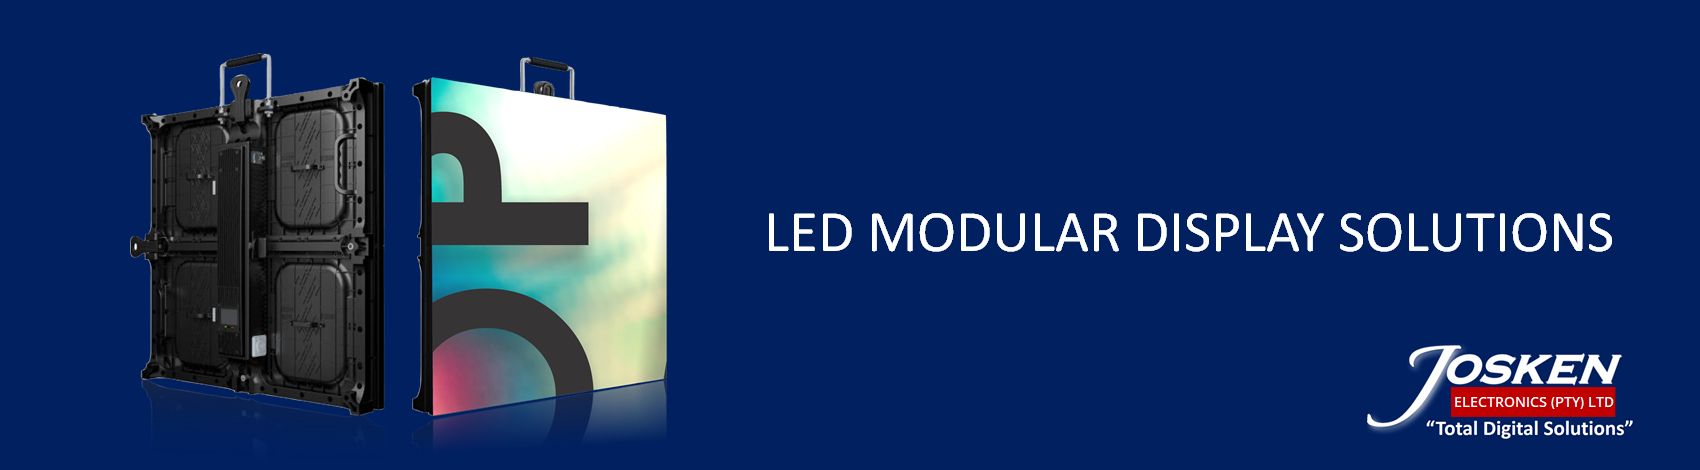 LED-MODULAR-DSIPLAY-BANNER